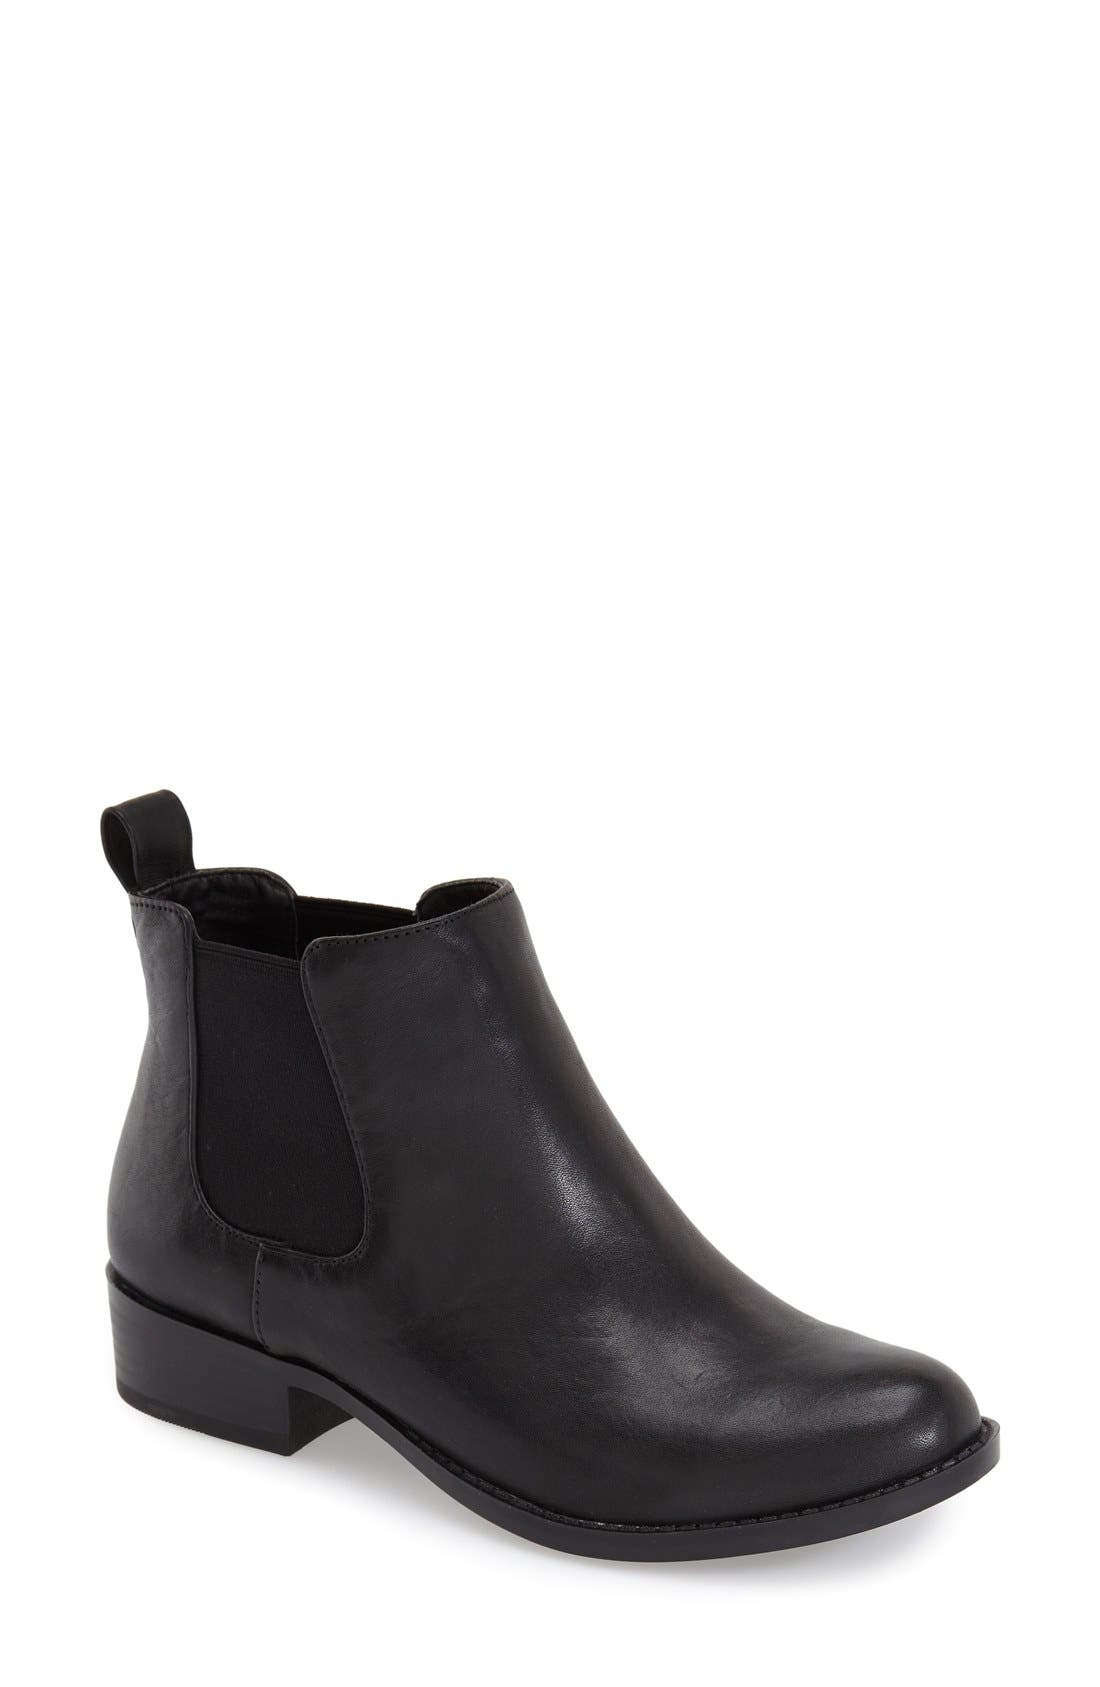 Alternate Image 1 Selected - Sole Society 'Noa'Bootie(Women)